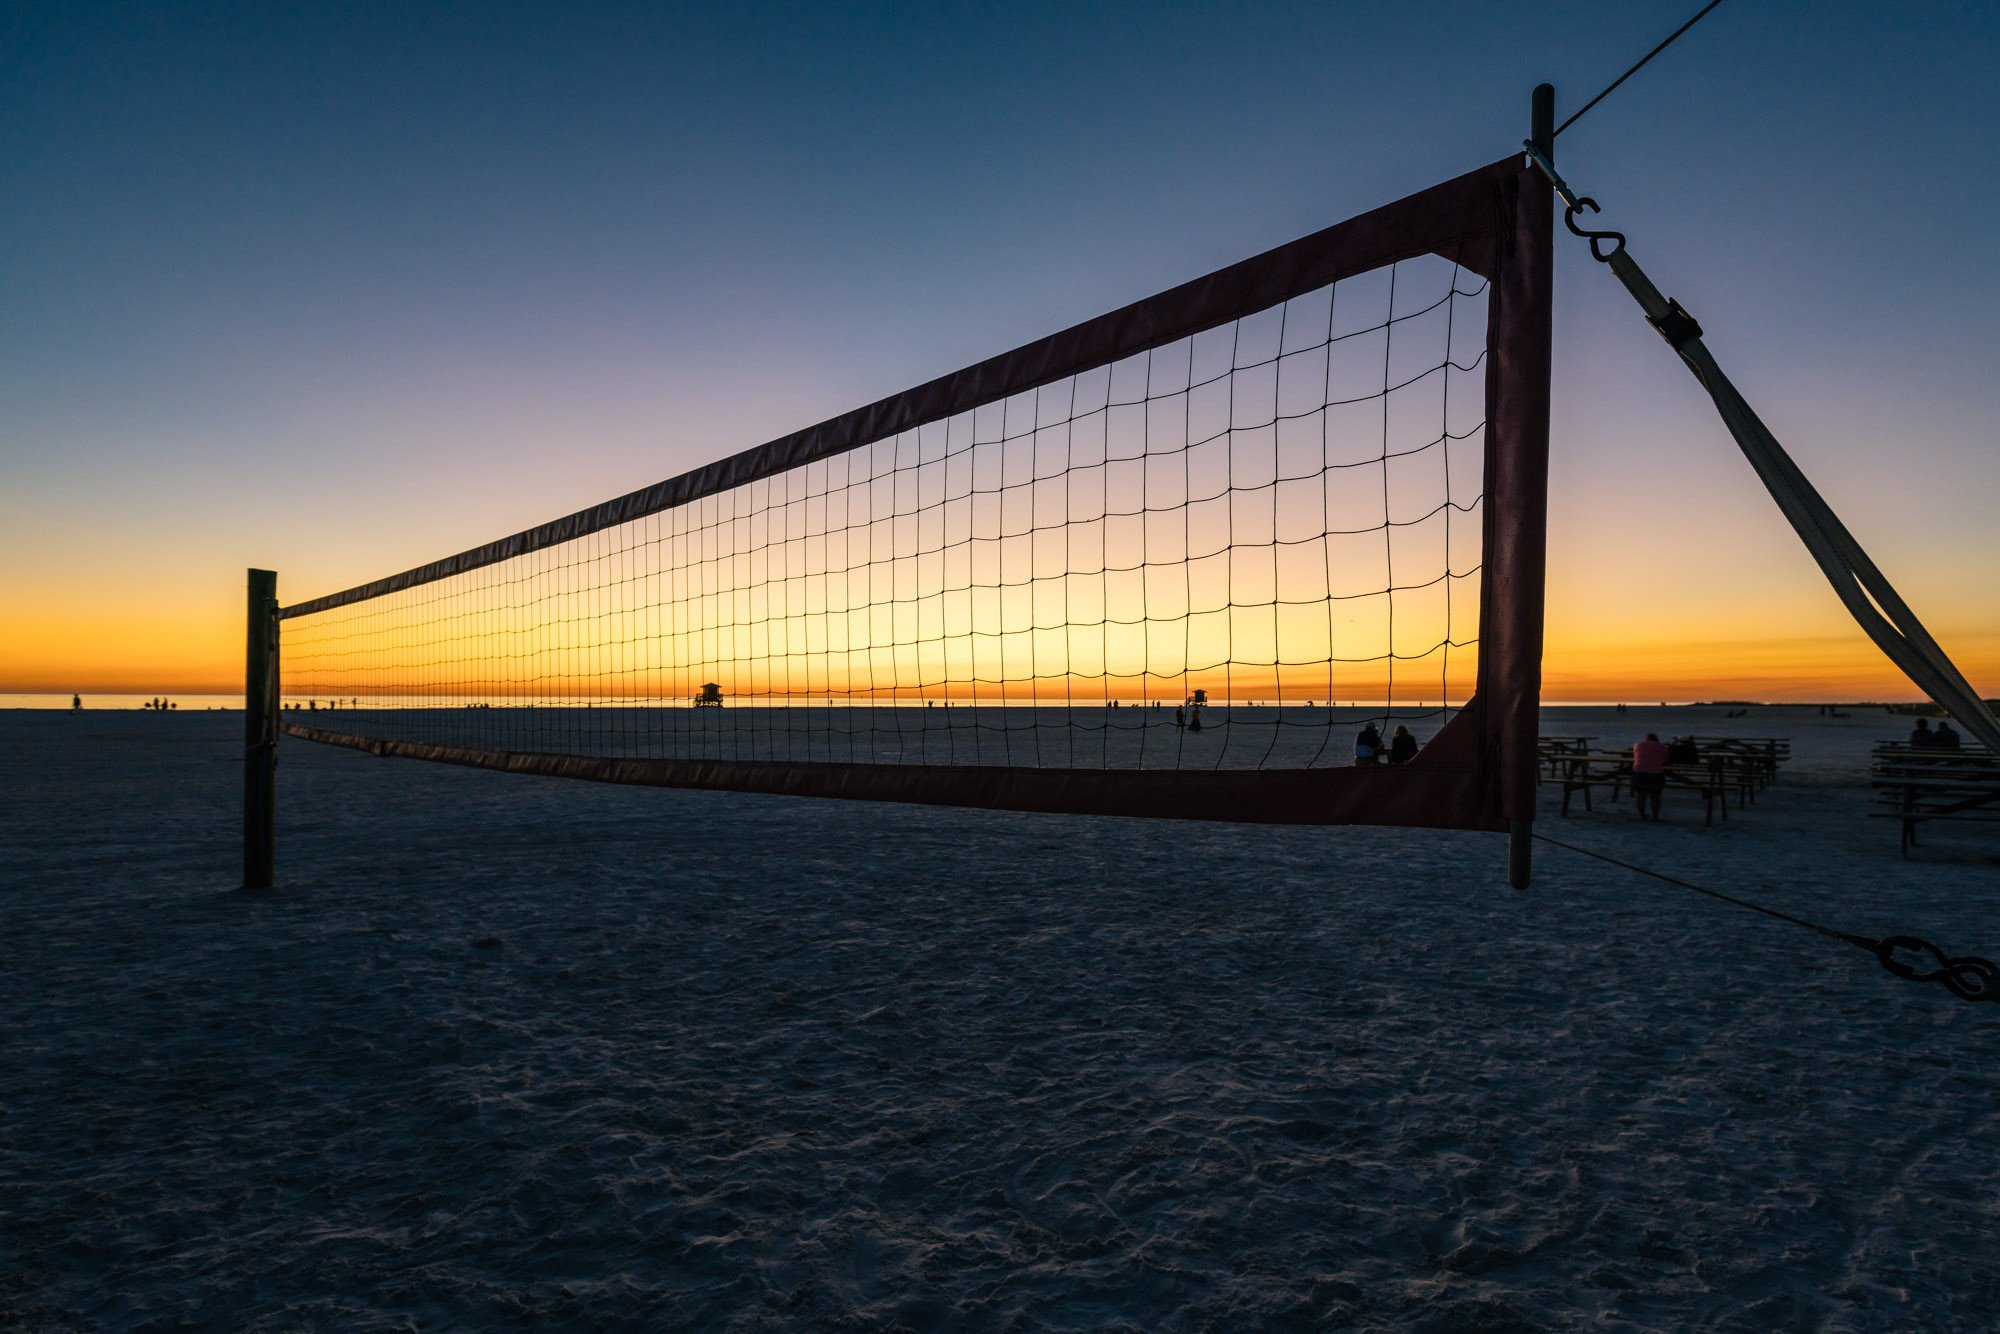 15-12-11_post-img_1540_sunset-volleyball